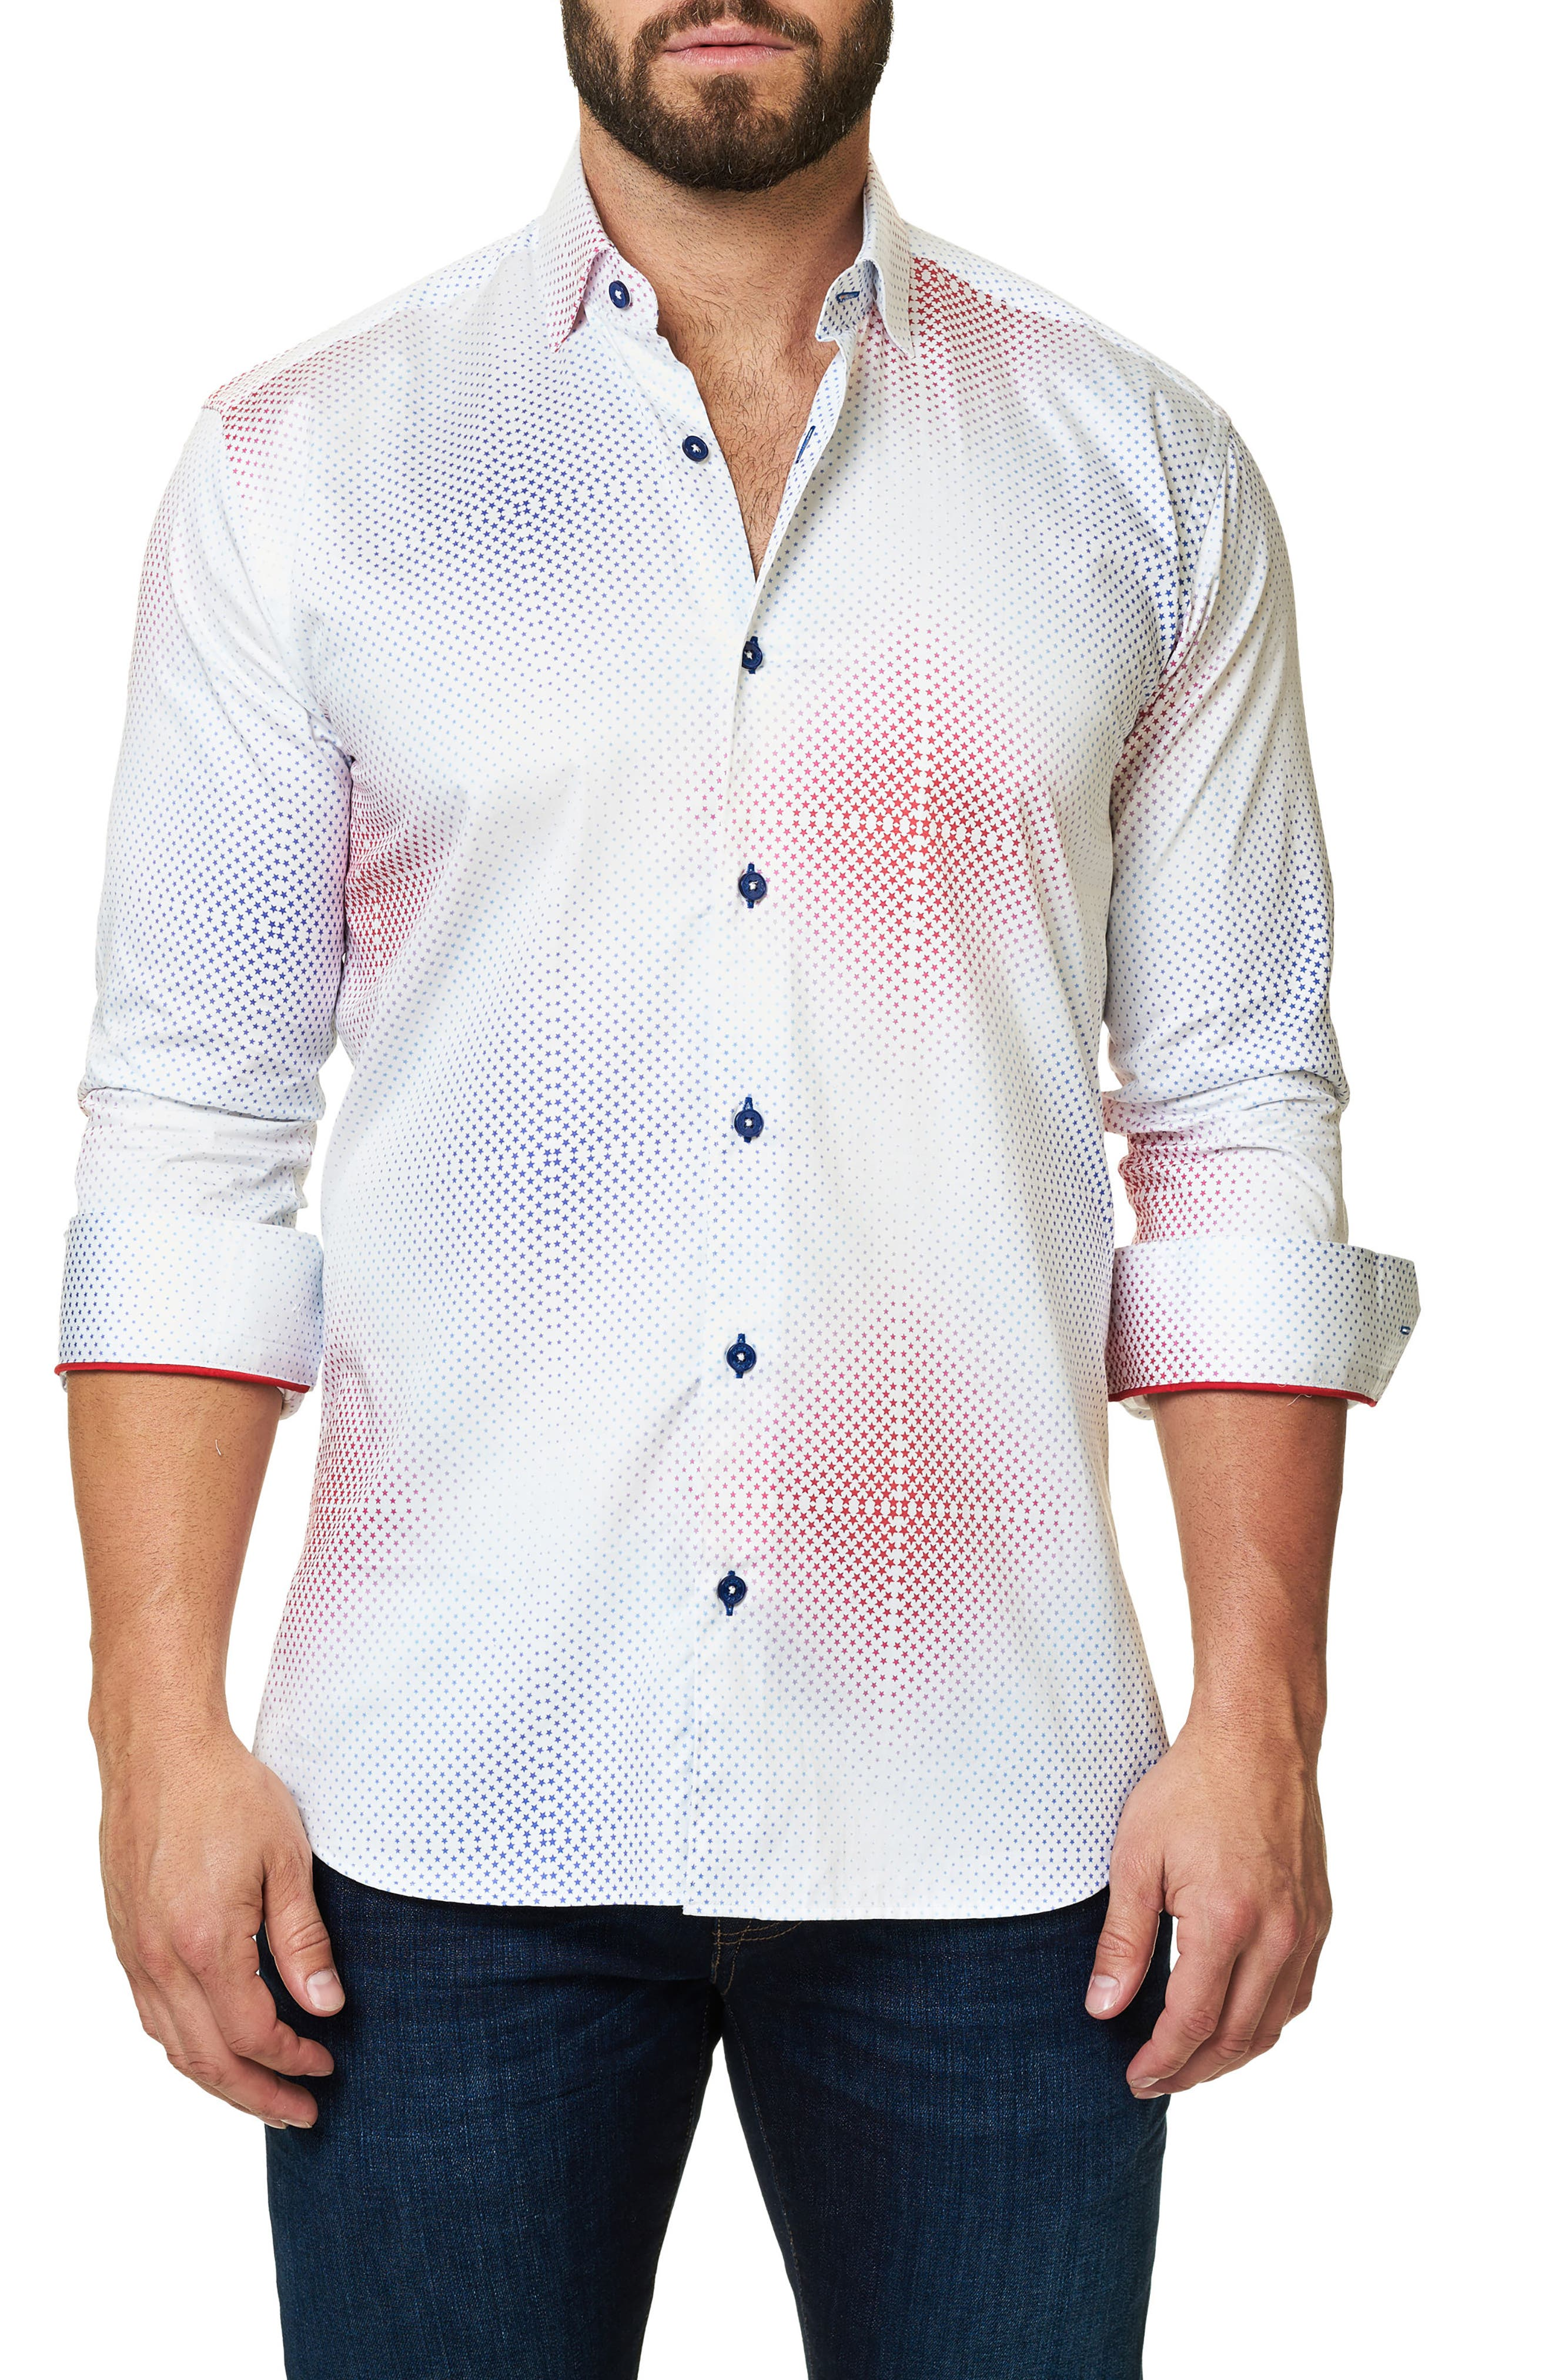 Alternate Image 1 Selected - Maceoo Trim Fit Ombré Star Sport Shirt